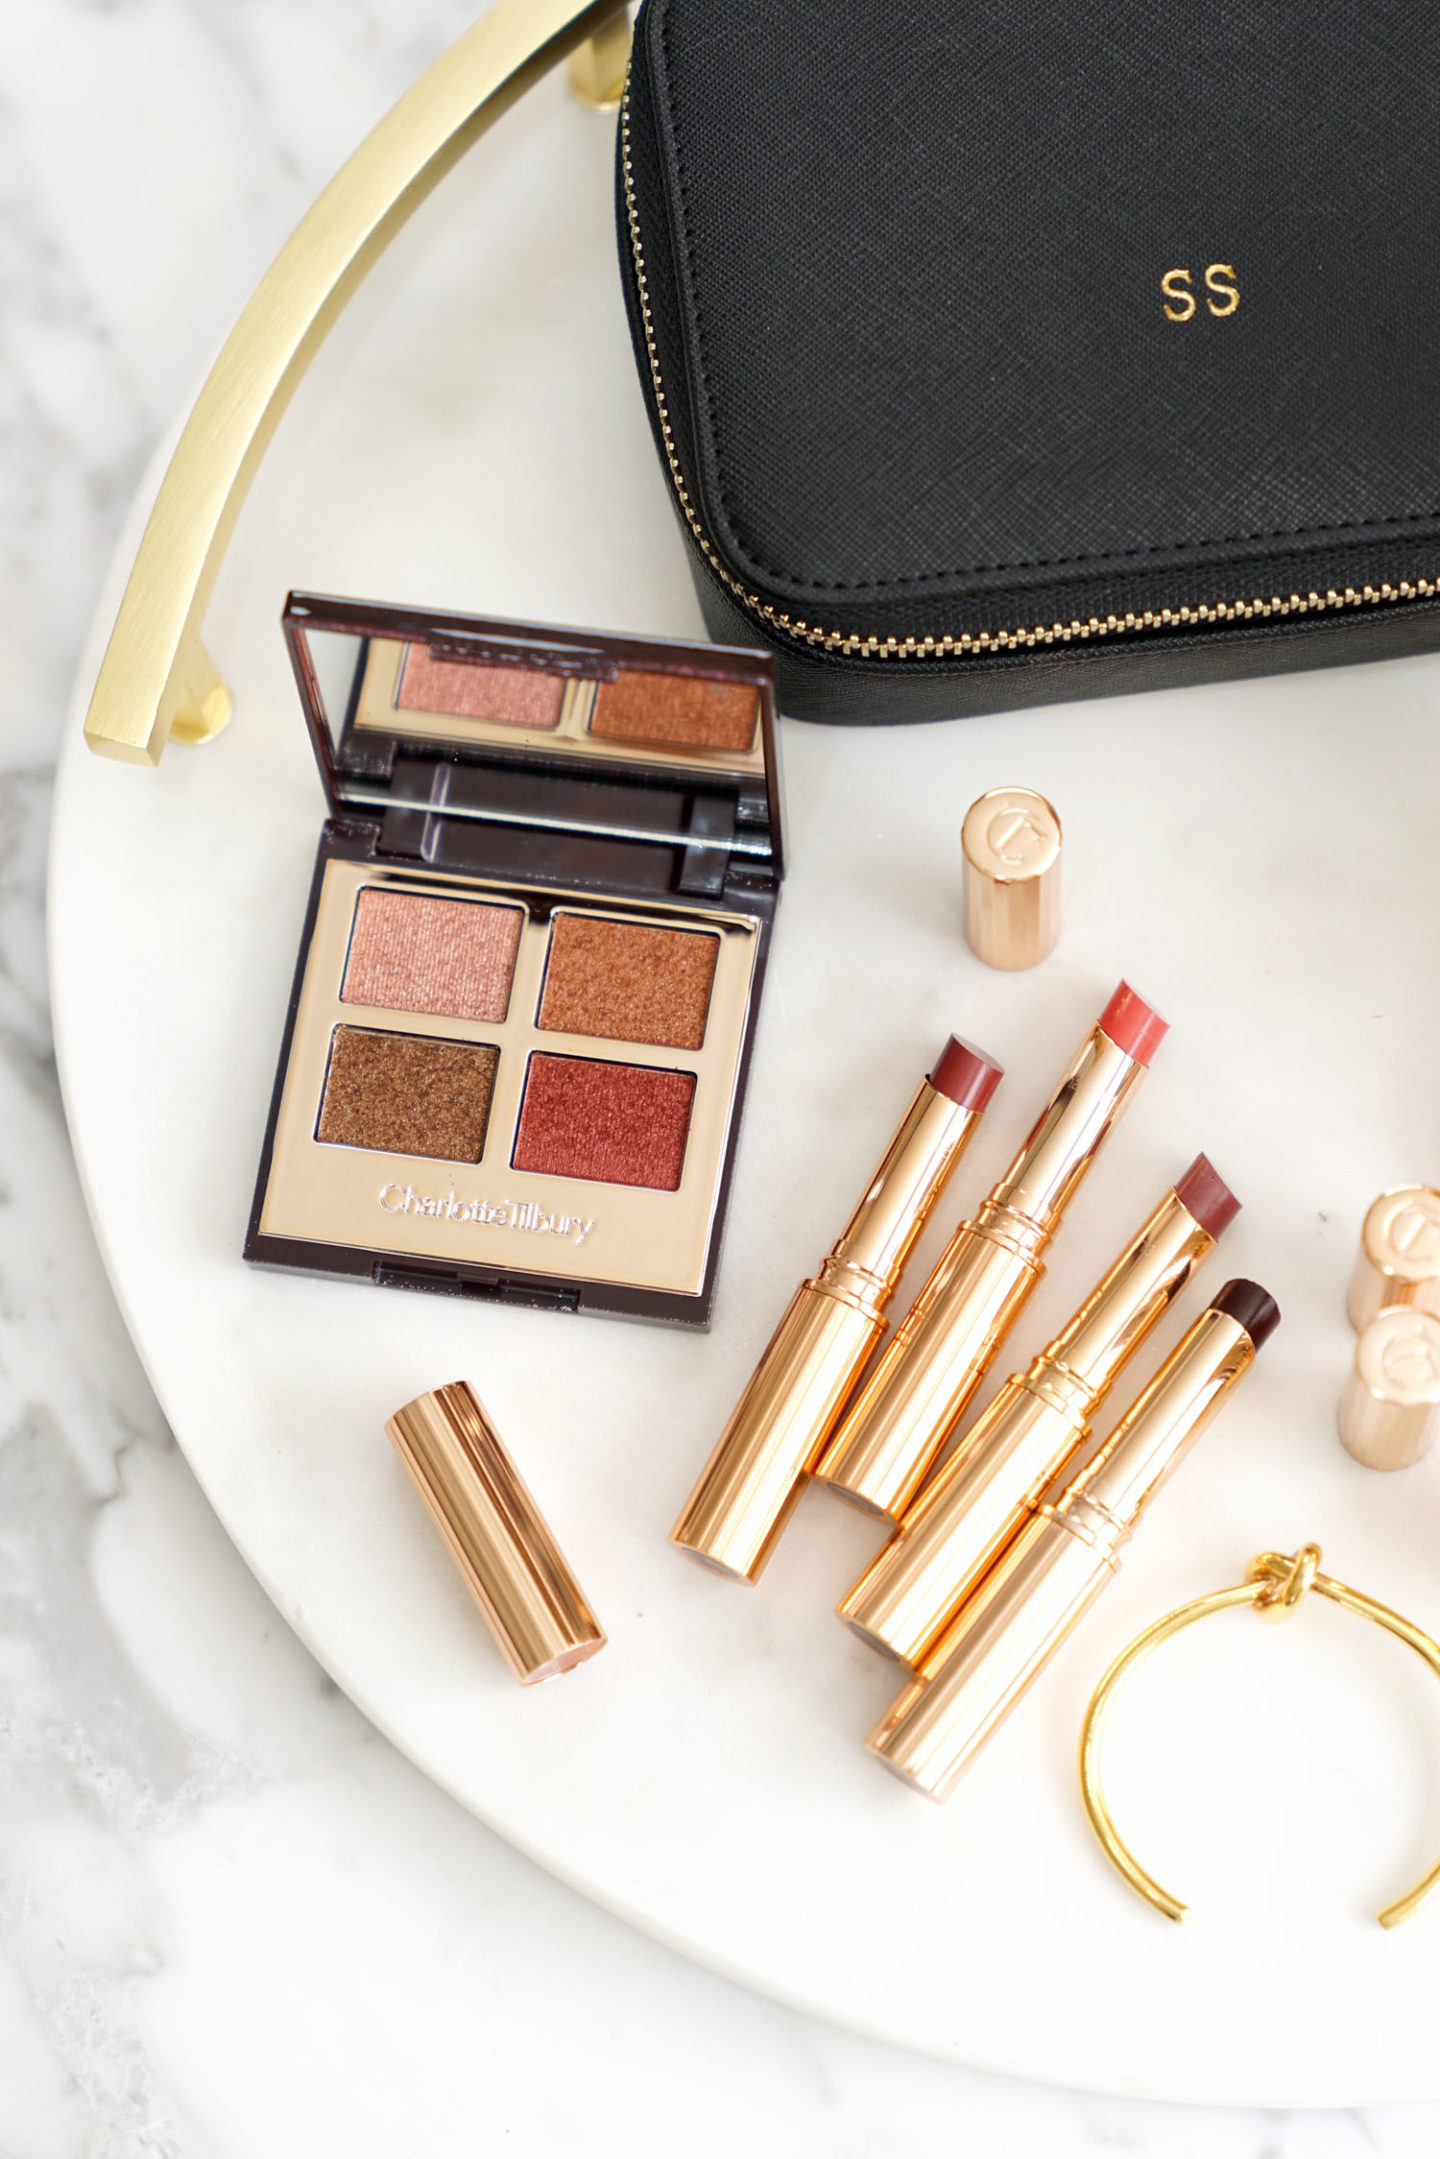 Charlotte Tilbury Luxury Palette of Pops Supersonic Girl + Superstar Lips Review